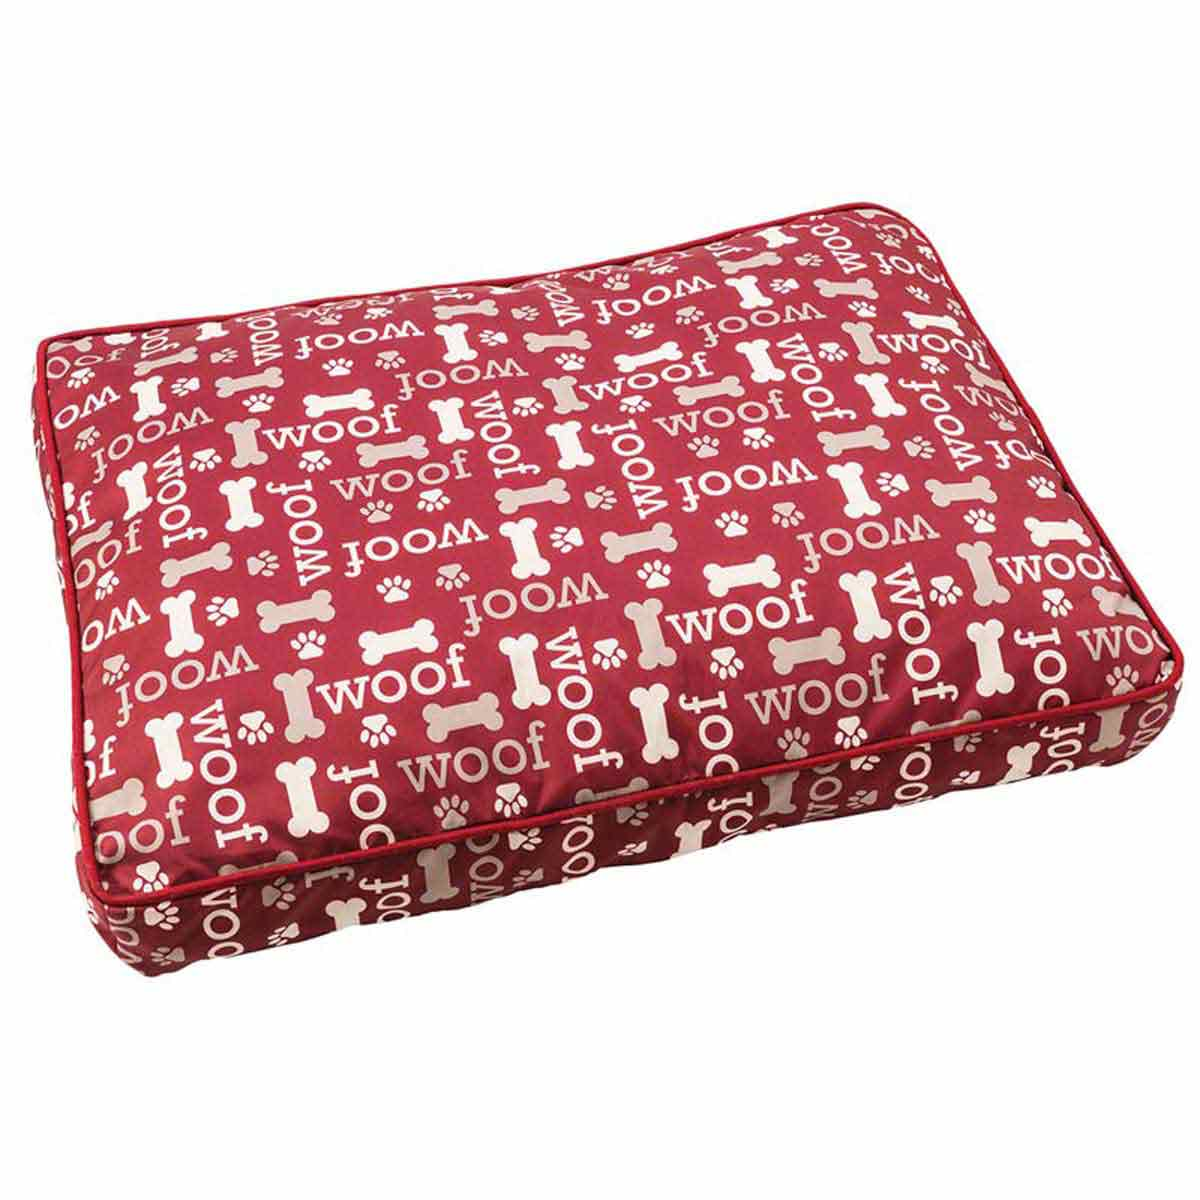 40 inch Sleep Zone Pillow Pet Bed with Woof Design in Burgundy